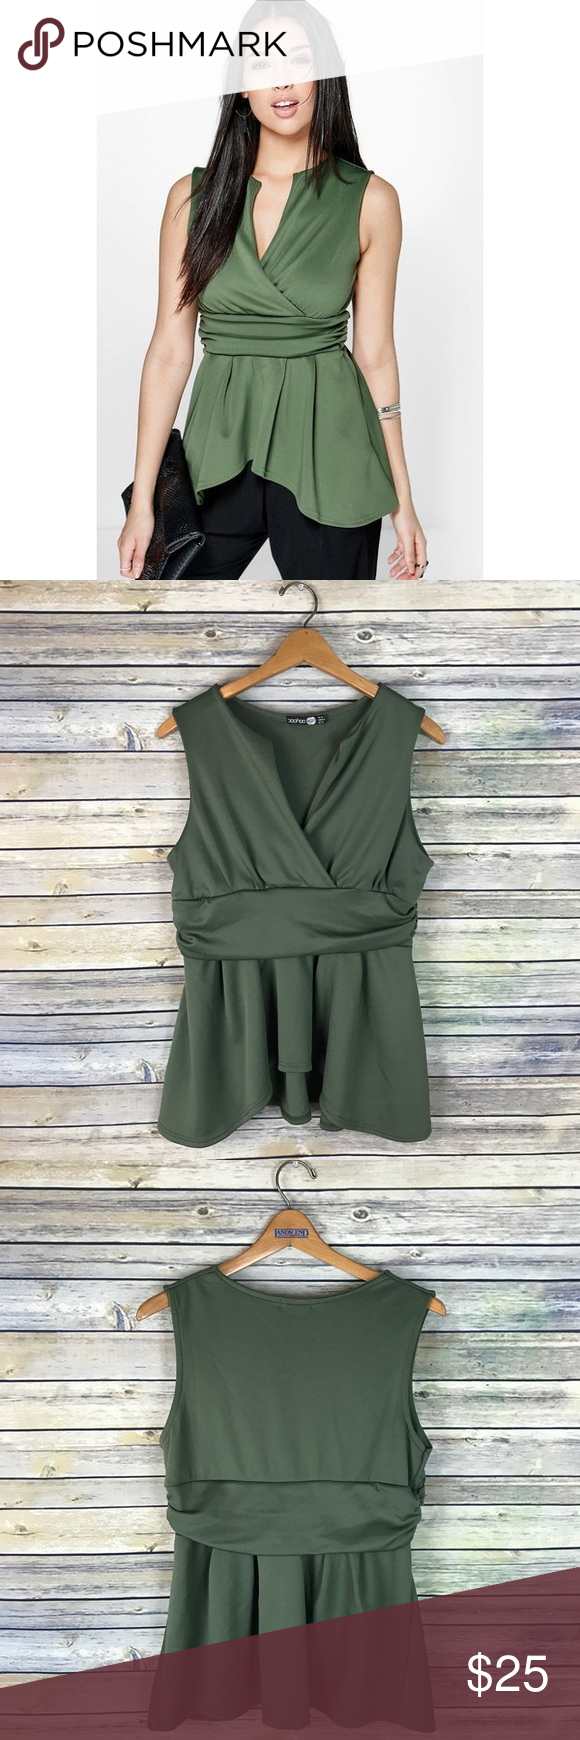 """Boohoo Night Tina Dip Back Wrap Front Peplum Top Super cute sleeveless peplum tank with wrap detailing. Slightly longer in the back. Very pretty olive green color. Stretchy. Gently used condition.  Measurements laying flat (without stretching)- Armpit to armpit: 18.5"""" Length, shoulder to hem: 27"""" Boohoo Tops"""